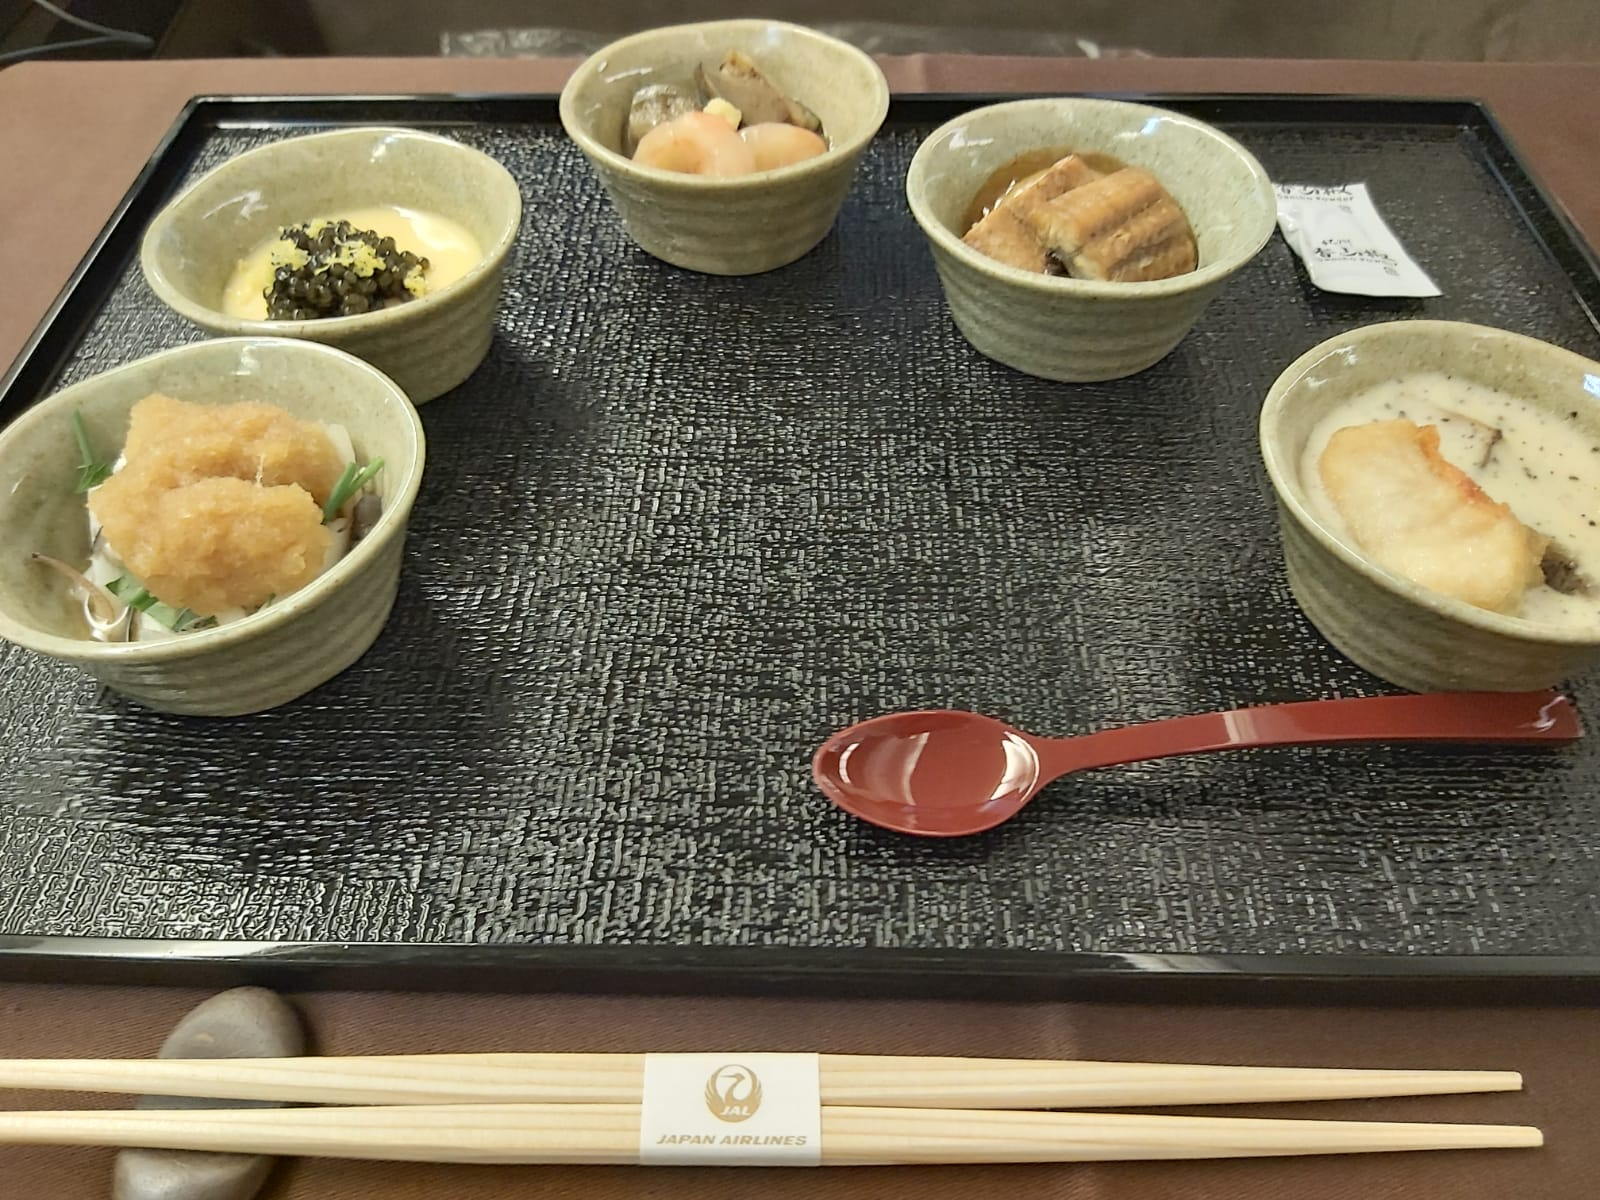 Japan Airlines first class menu delicacies